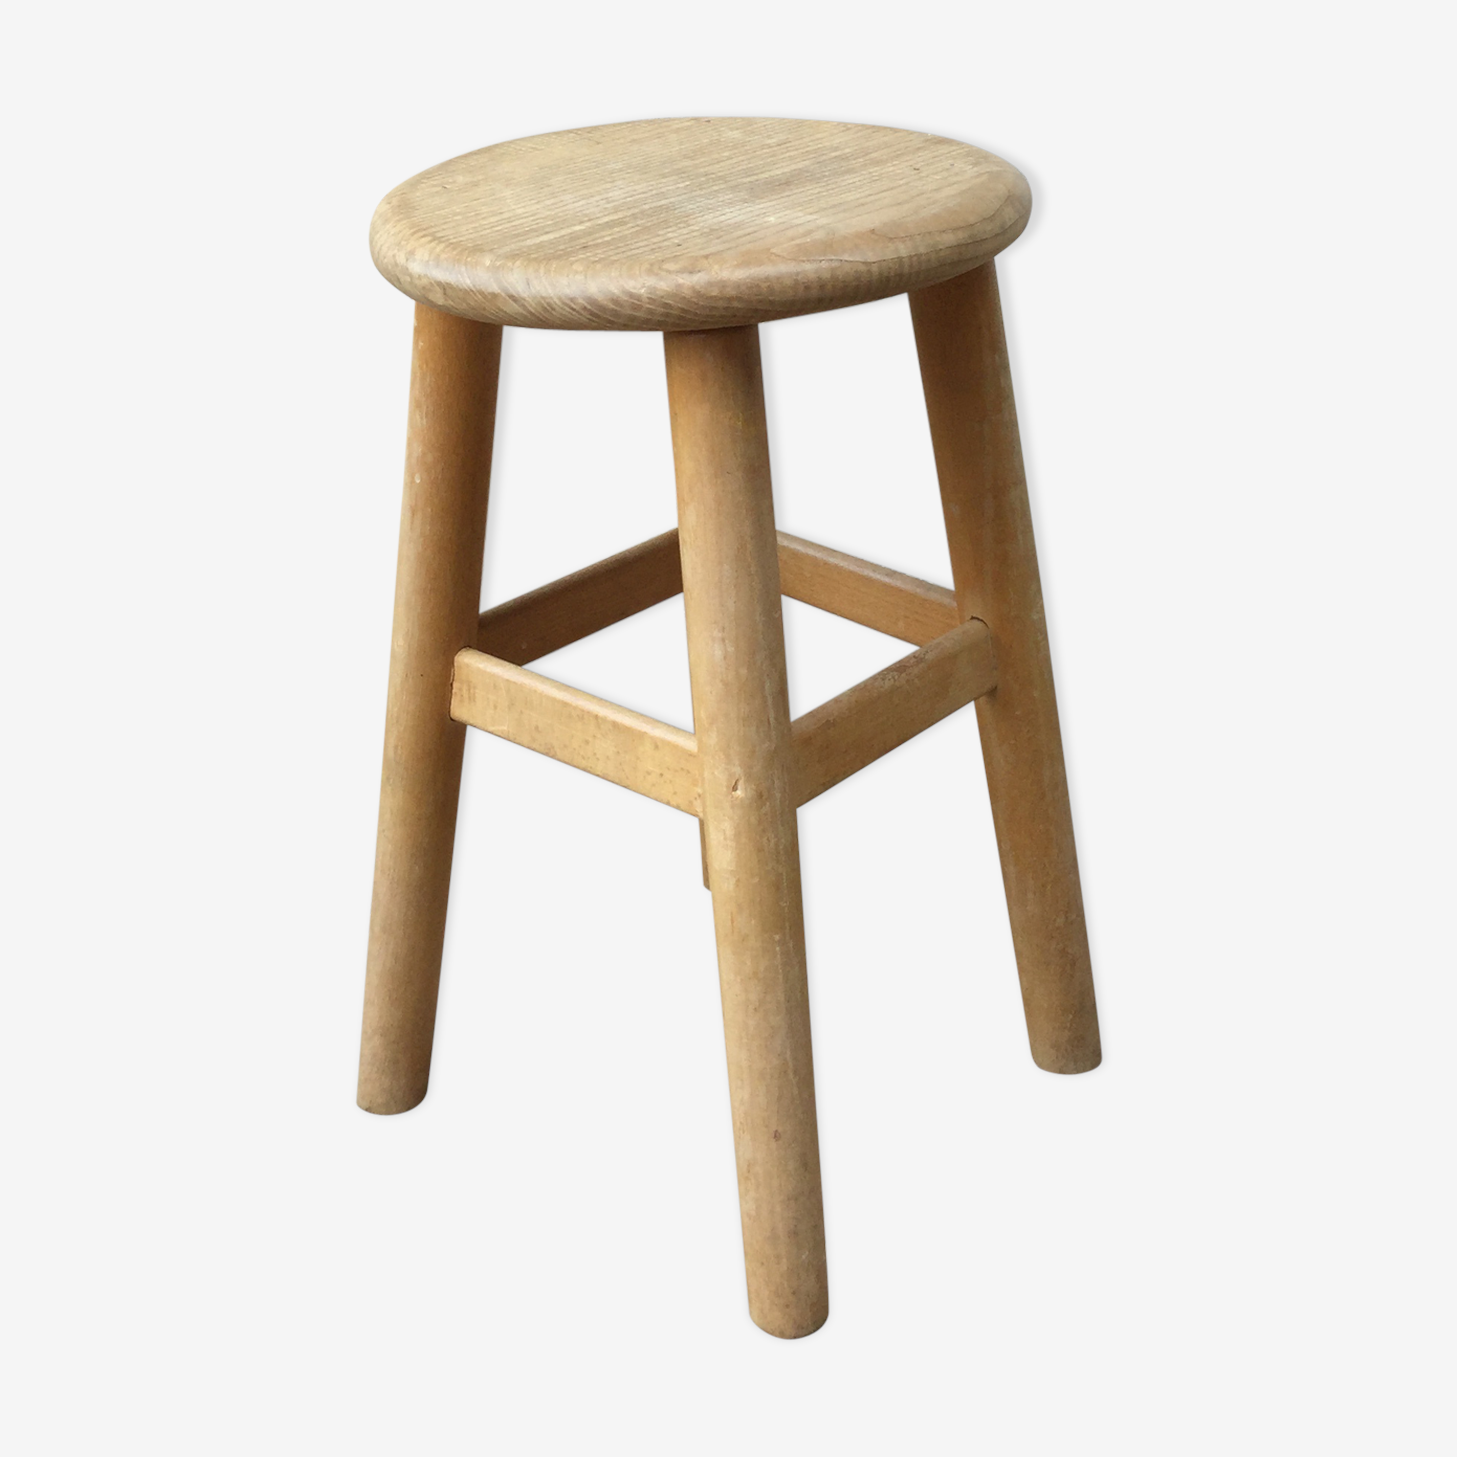 Stool wooden Scandinavian vintage from the 60s